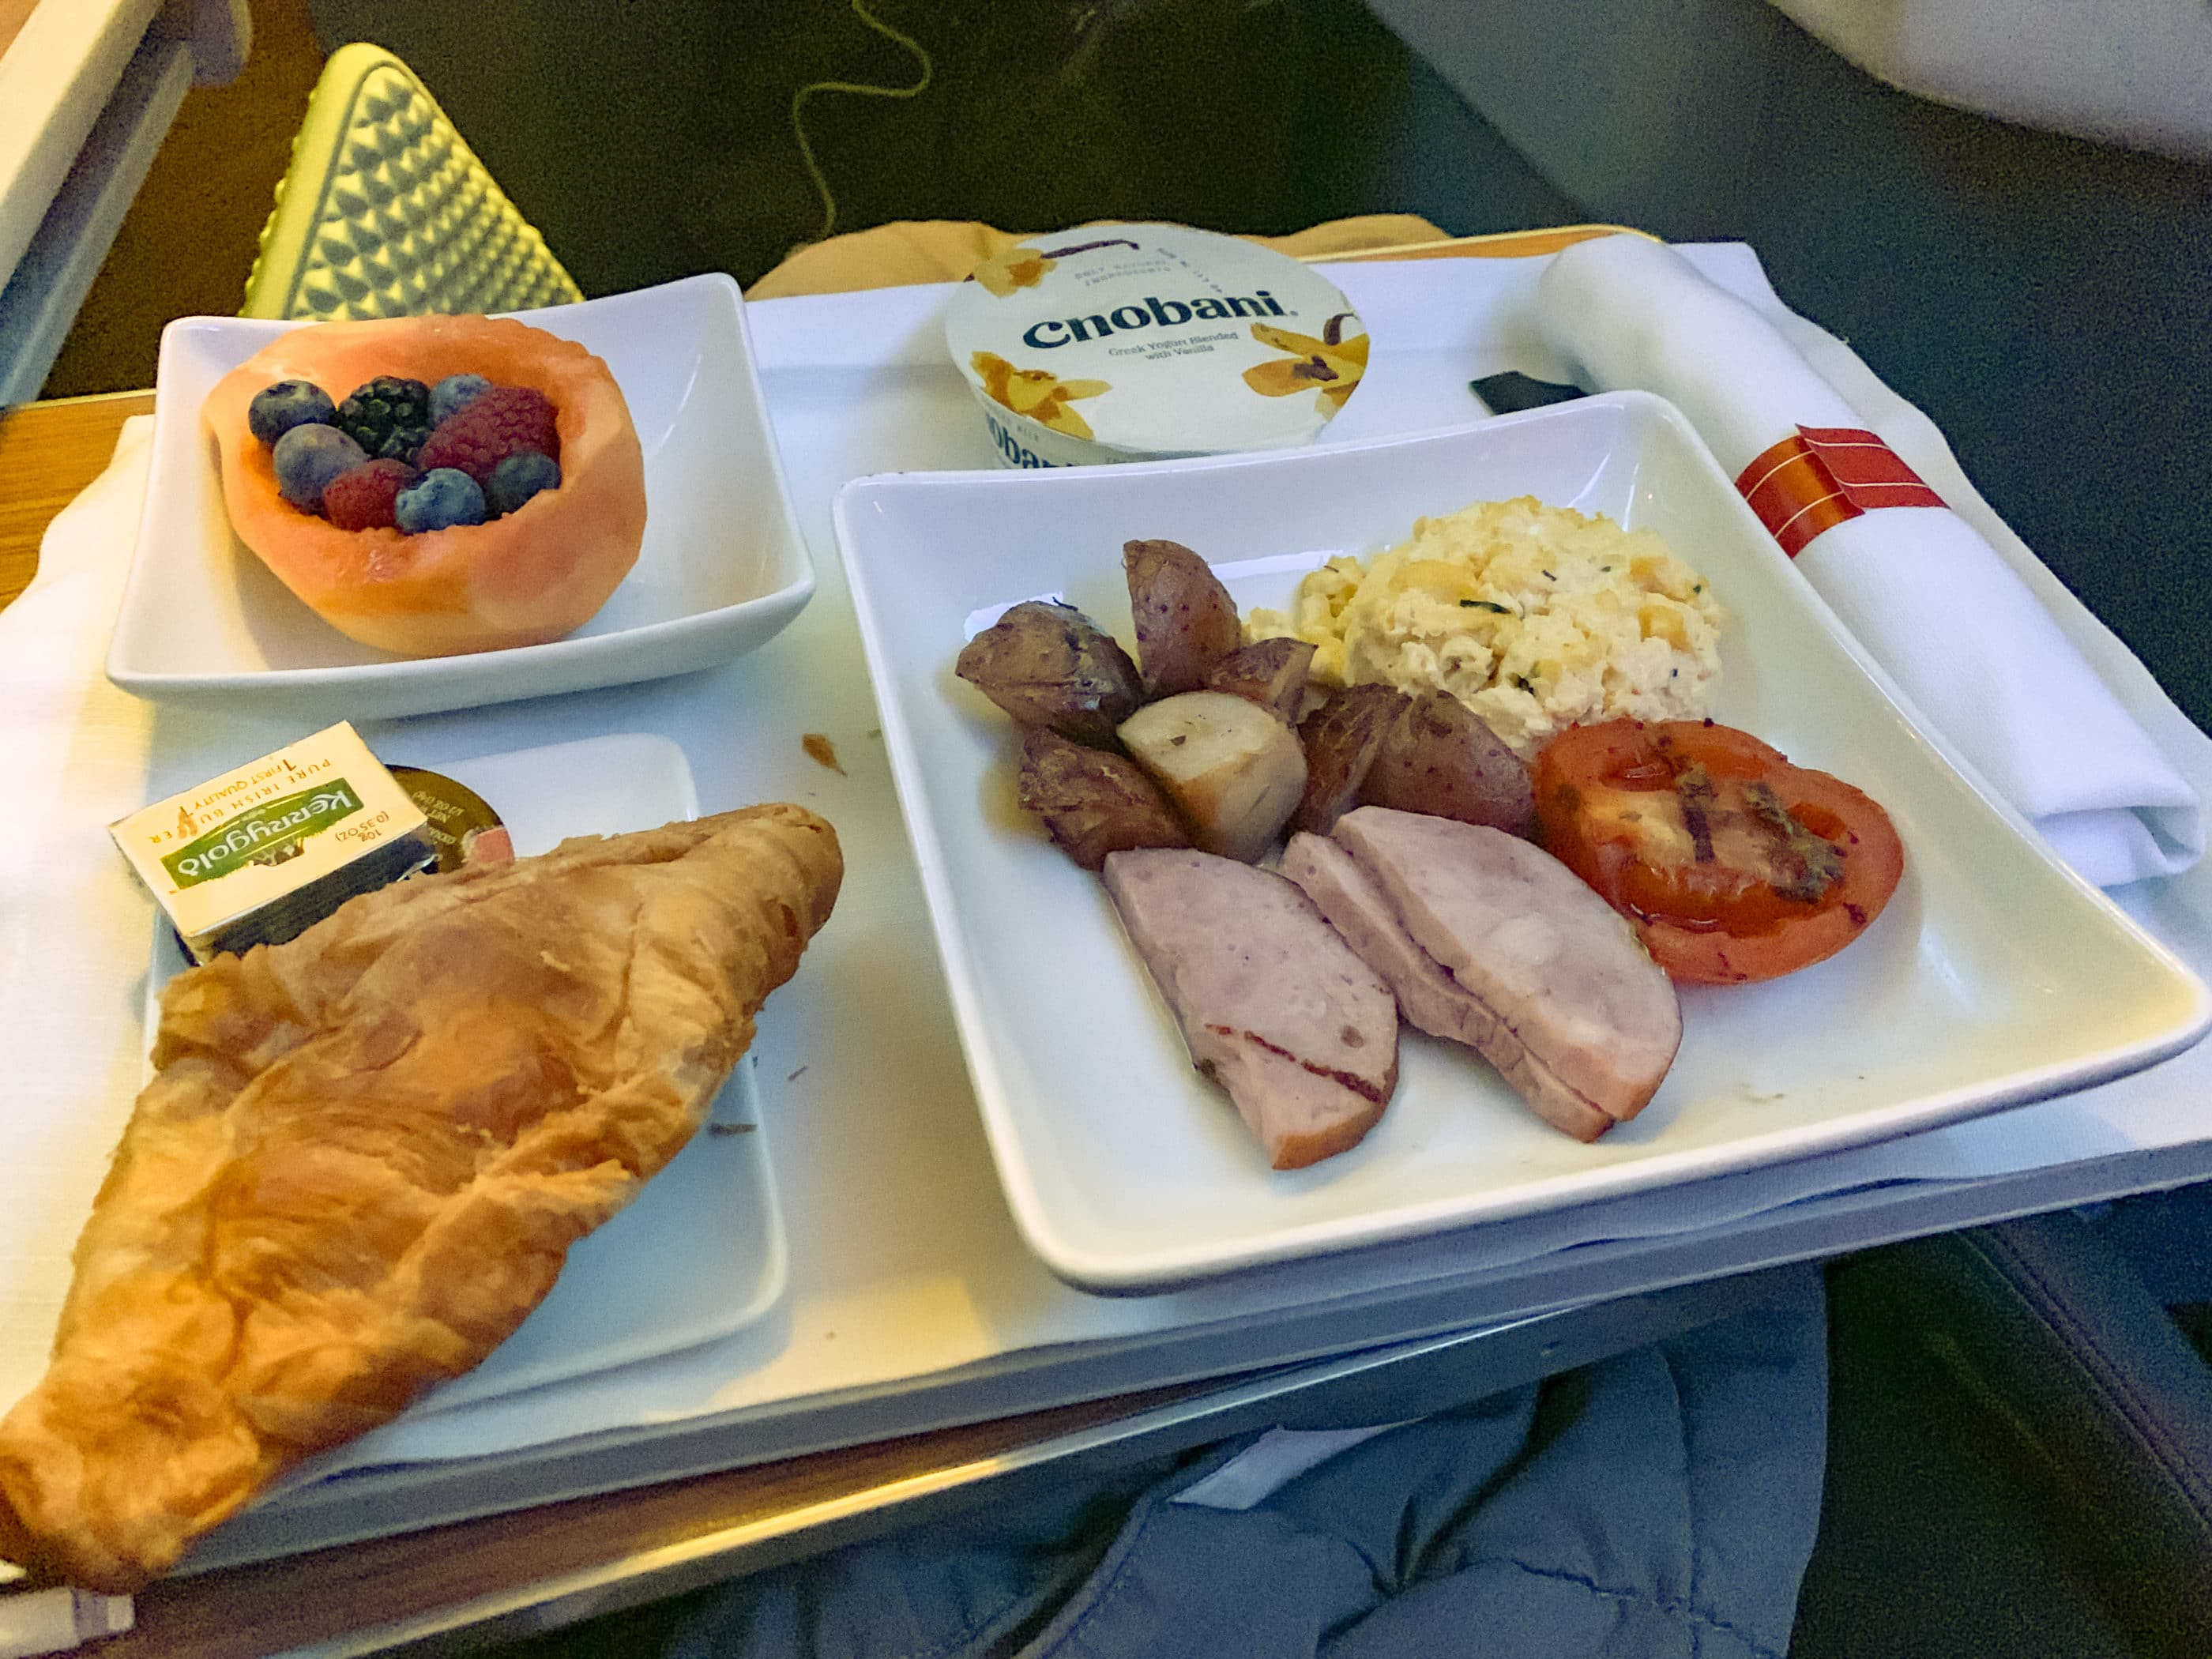 Breakfast on American Airlines business class from Los Angeles to Hong Kong